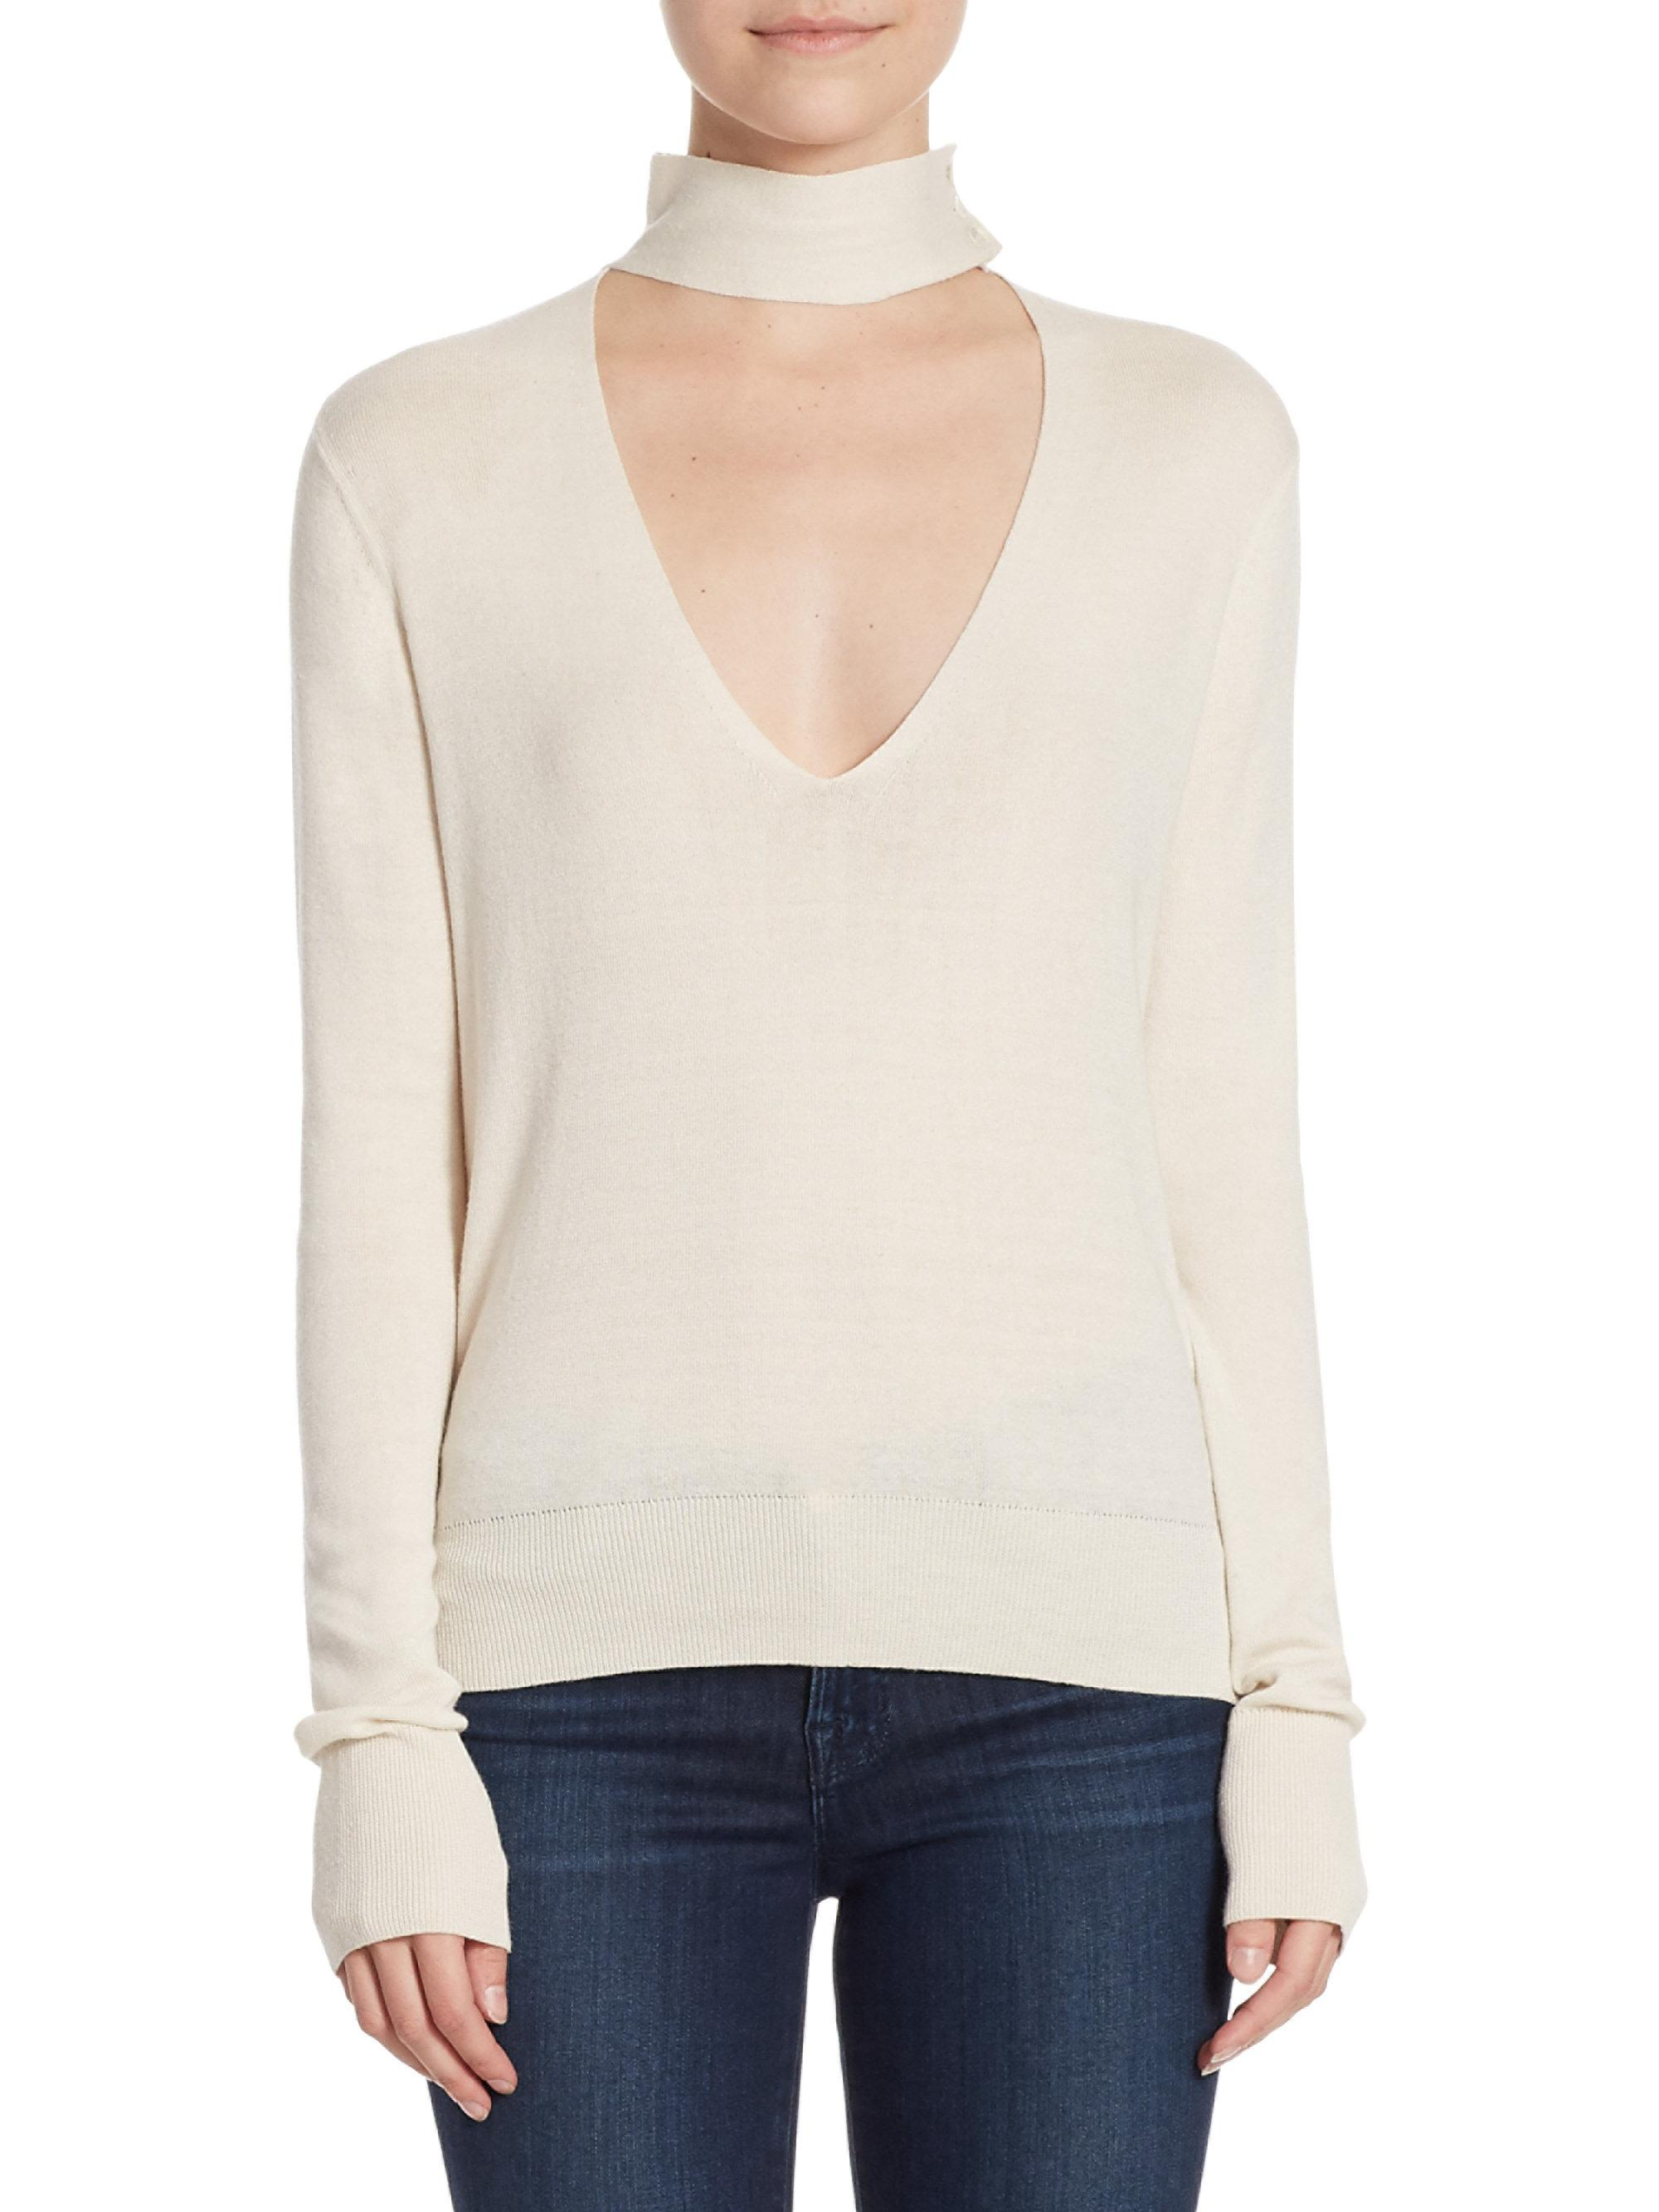 81a50ae838 Lyst - Theory Tie Neck Choker Top in White